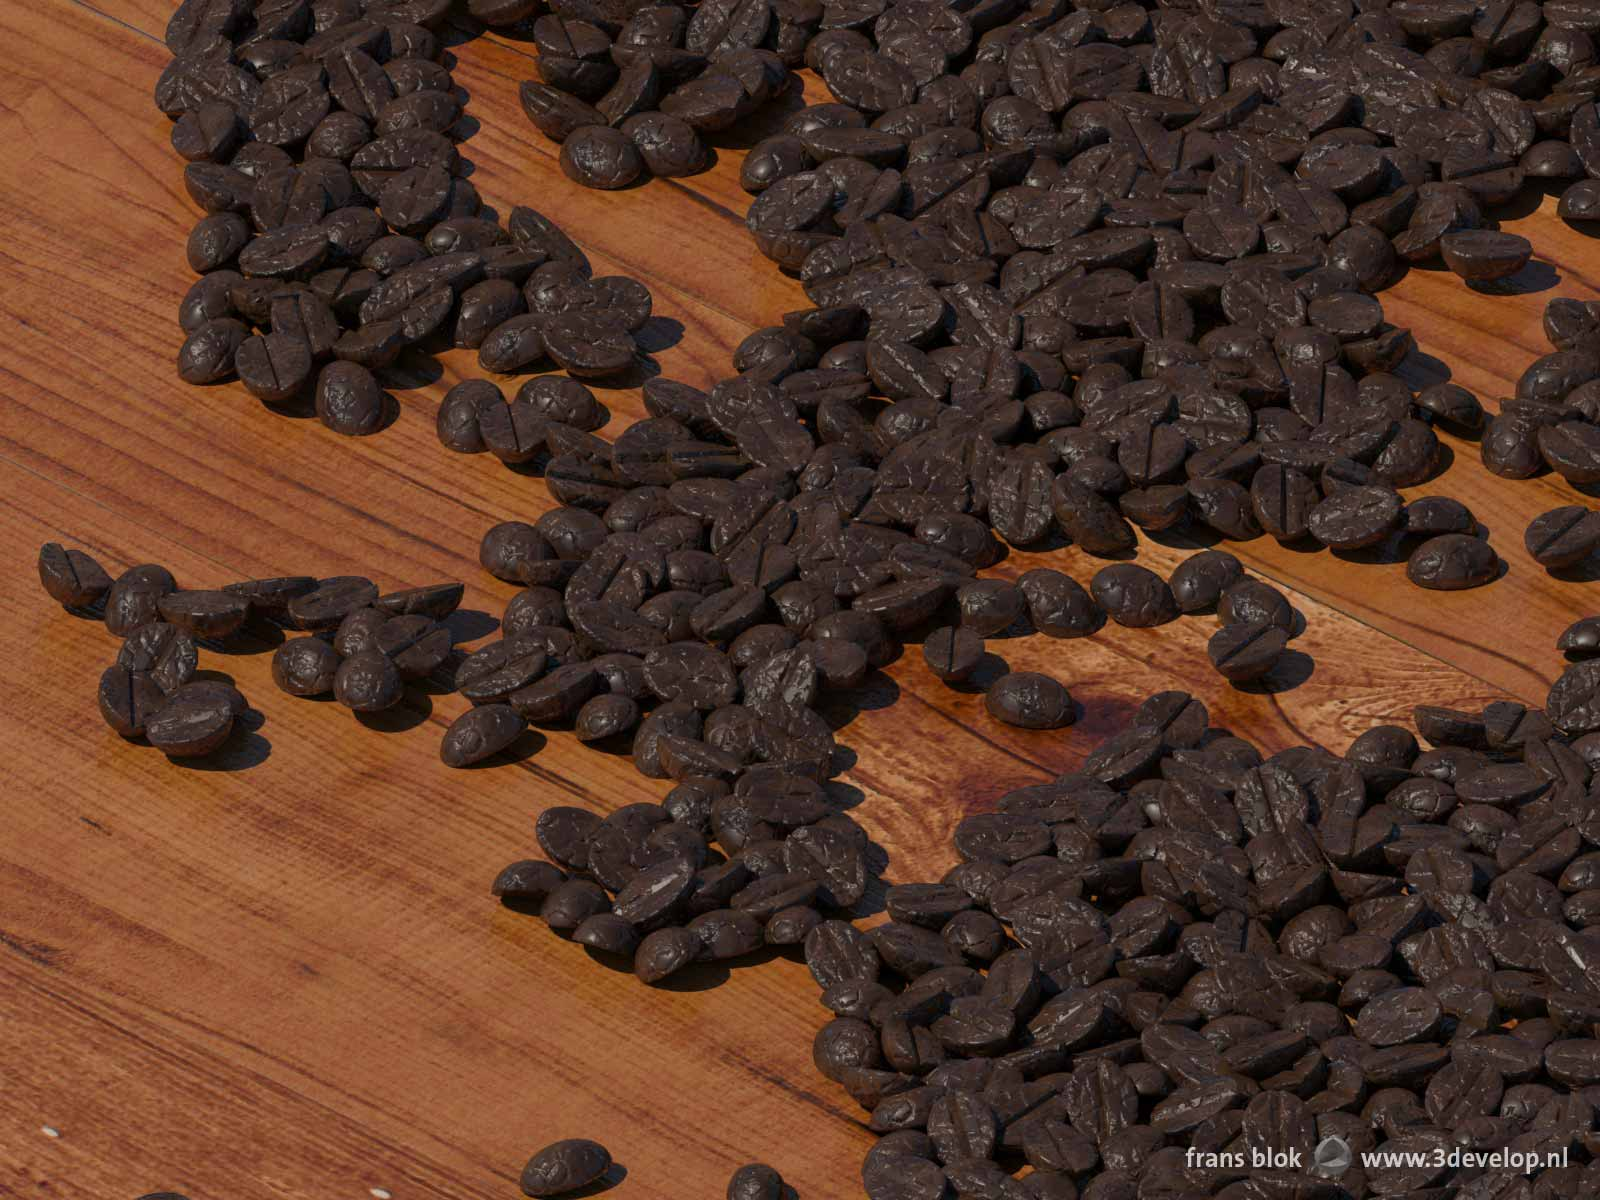 Detail image of a digital world map made of coffee beans on a wooden table